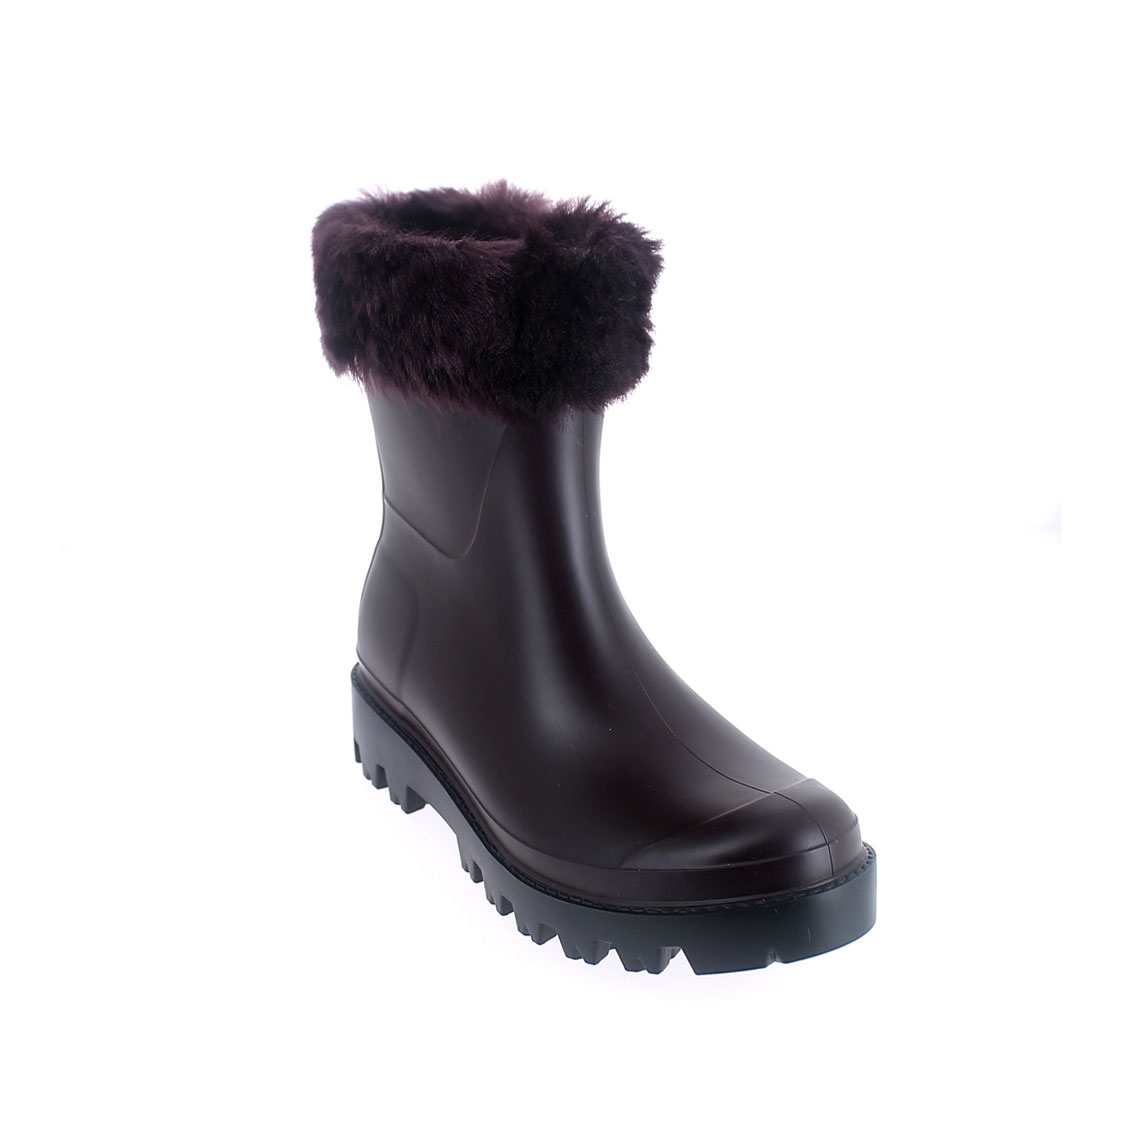 Wellington low boot in Sanguinaccio pvc with inner lining and cuff